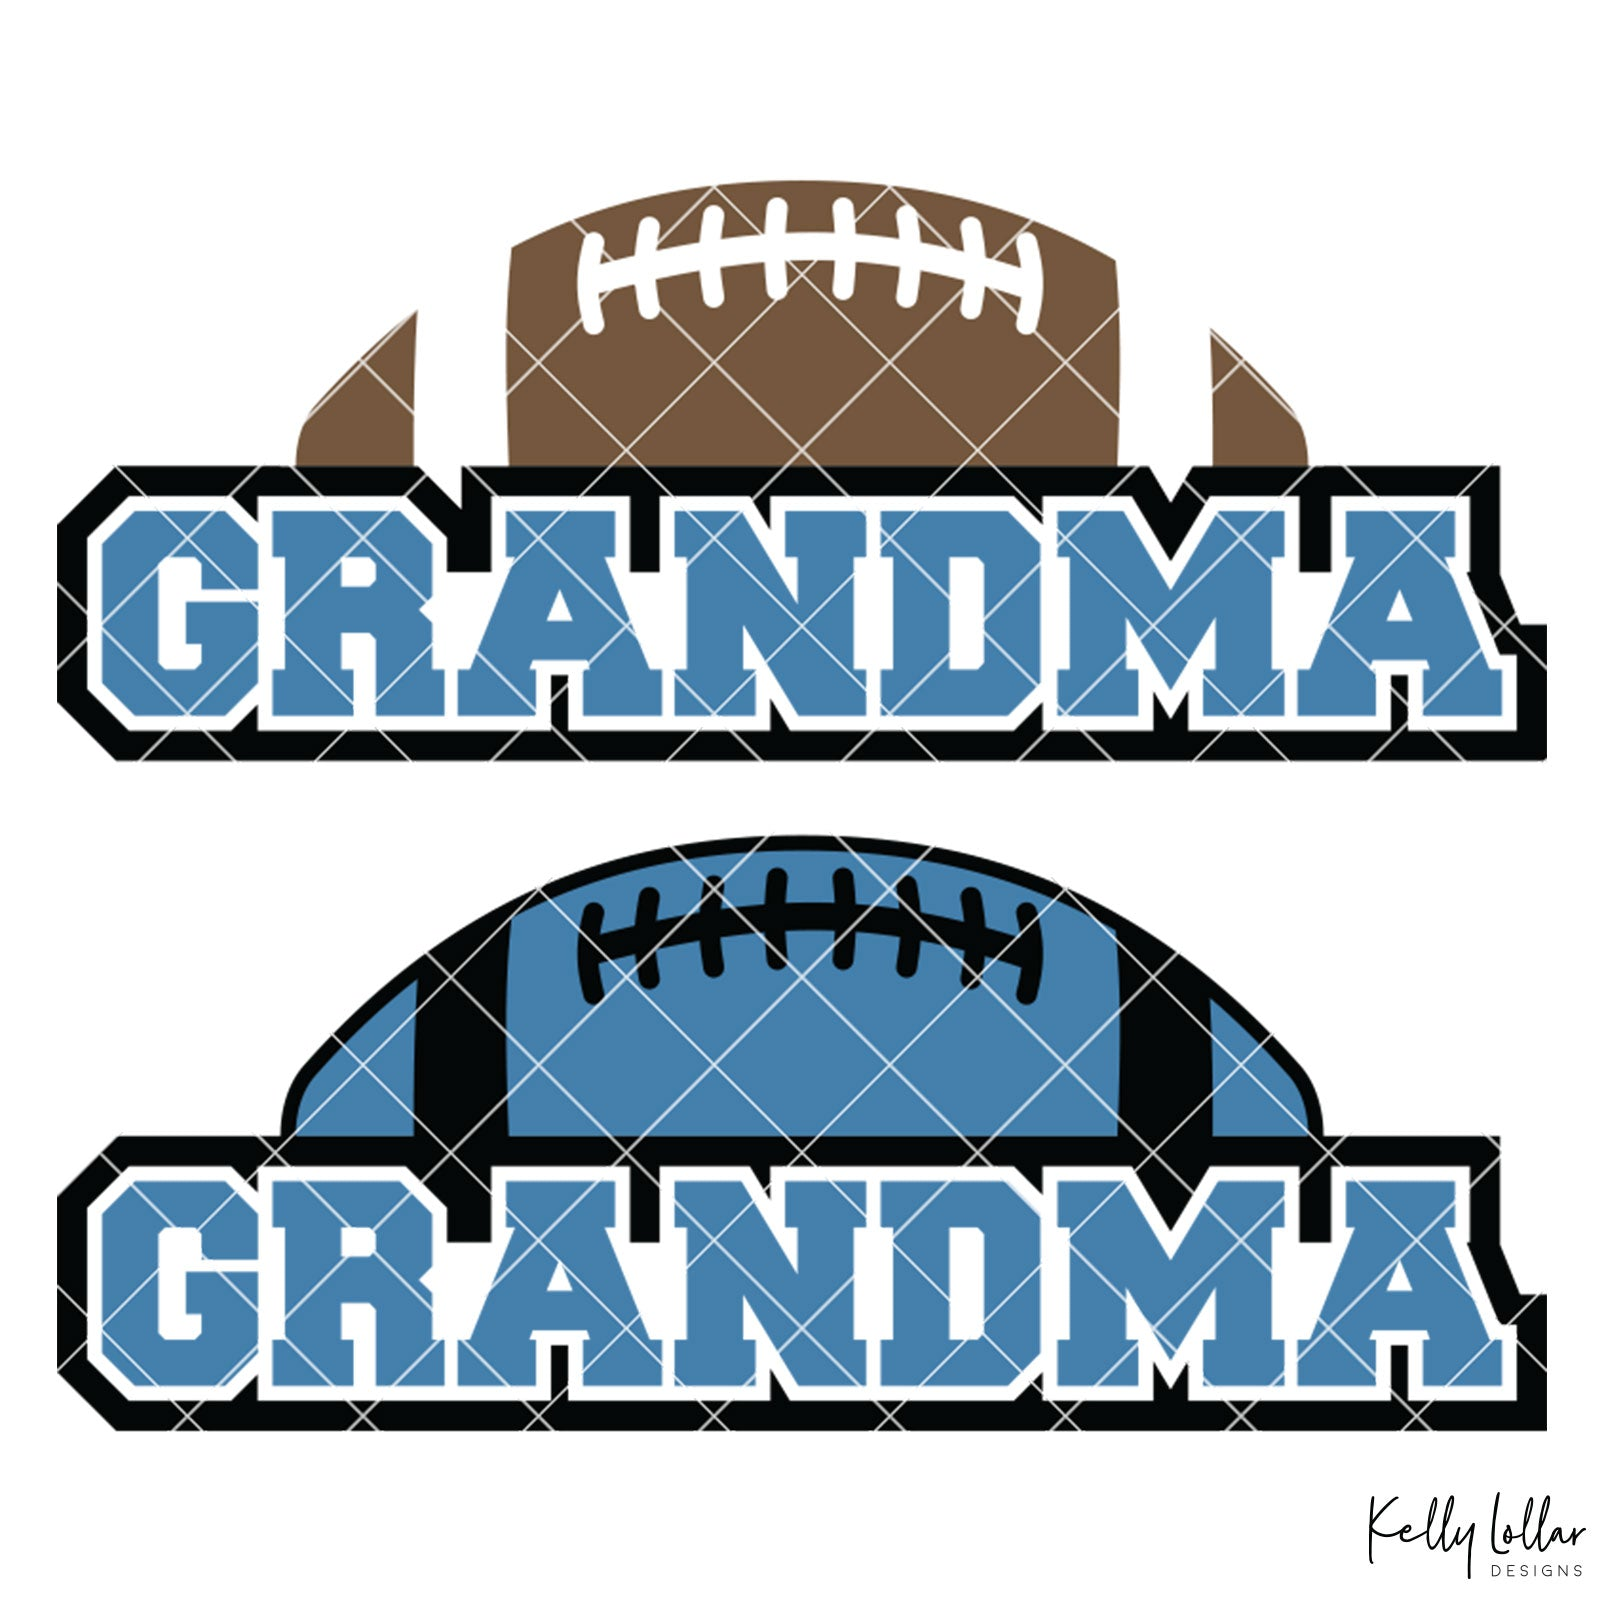 Family Football SVG Cut Files Family Member Names with Matching Football Helmet Monogram Frame | SVG DXF PNG Cut Files Choose from individual files or the whole bundle INDIVIDUAL FILES 3 files for each format